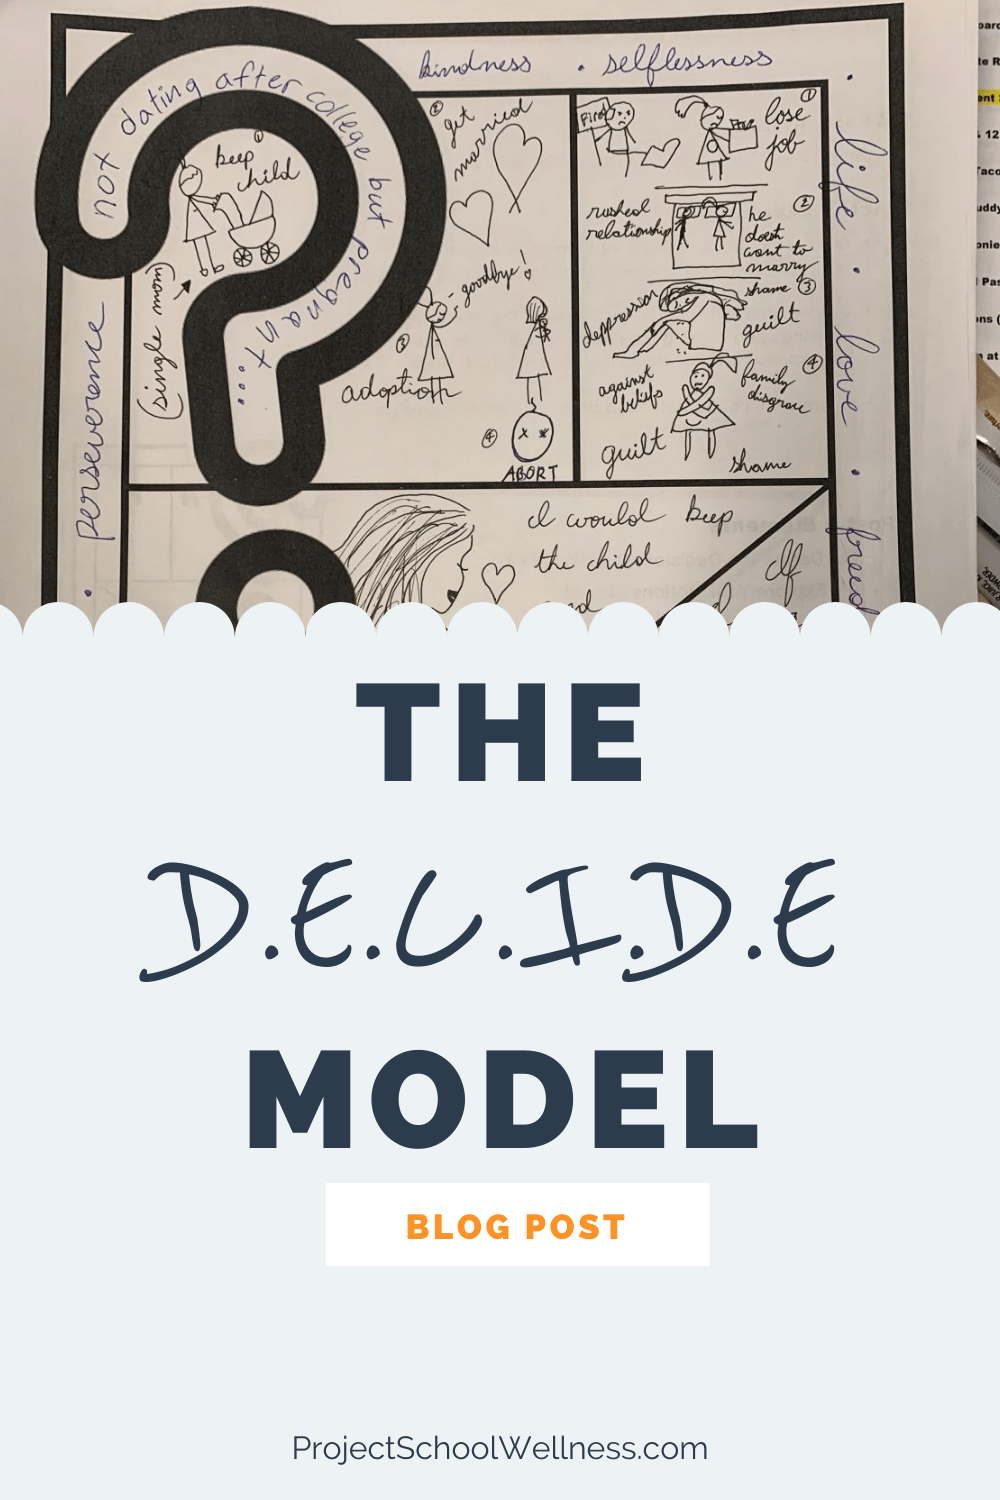 Teach students how to make healthy decisions using the DECIDE Model - A step-by-step guide for making values-based decisions.